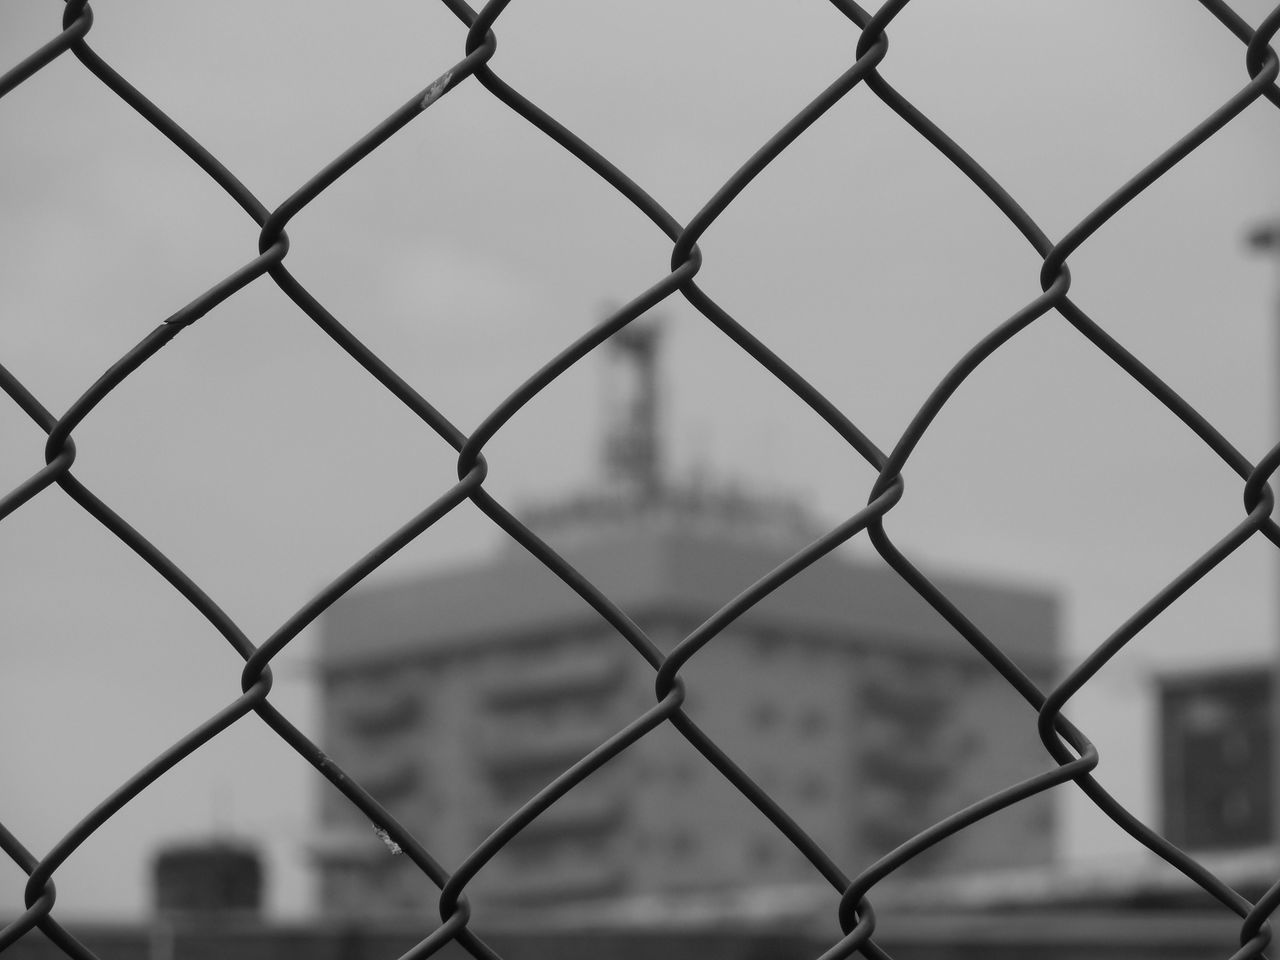 chainlink fence, protection, safety, metal, security, full frame, focus on foreground, close-up, pattern, day, sky, outdoors, no people, backgrounds, crisscross, city, nature